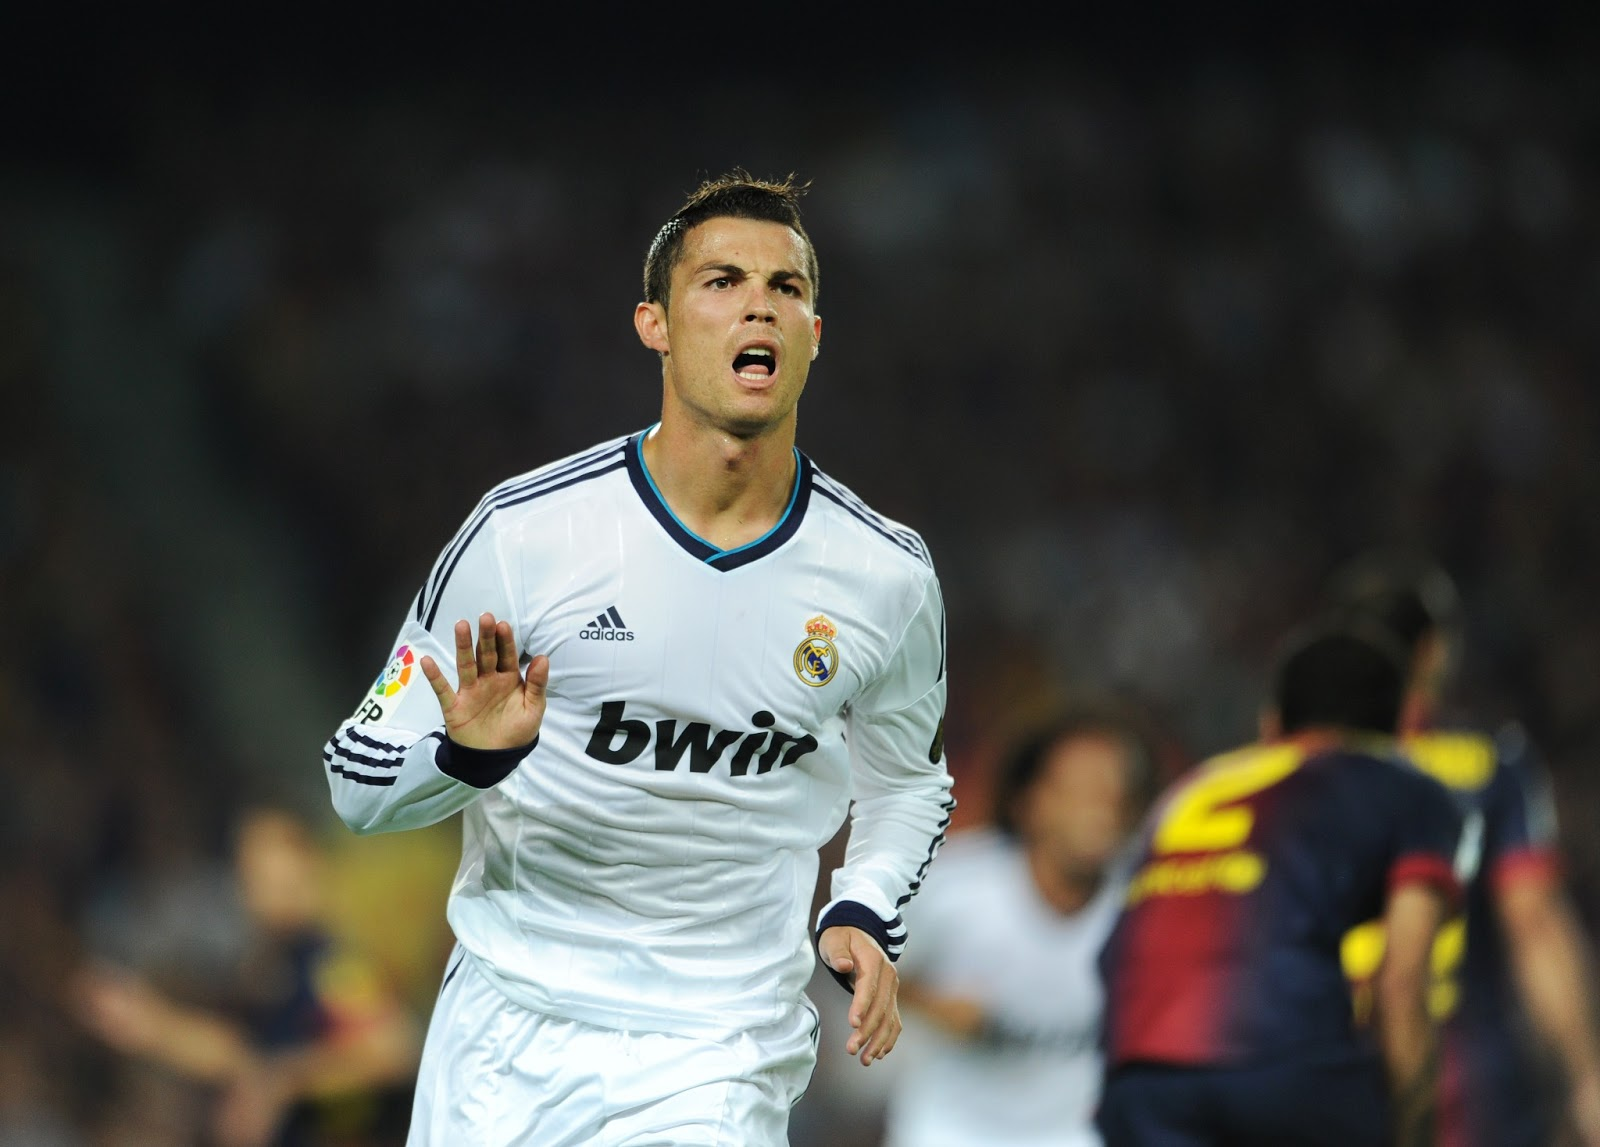 Cristiano-Ronaldo-2013-HD-Wallpaper-Picture-Real-Madrid-Calma-Calma